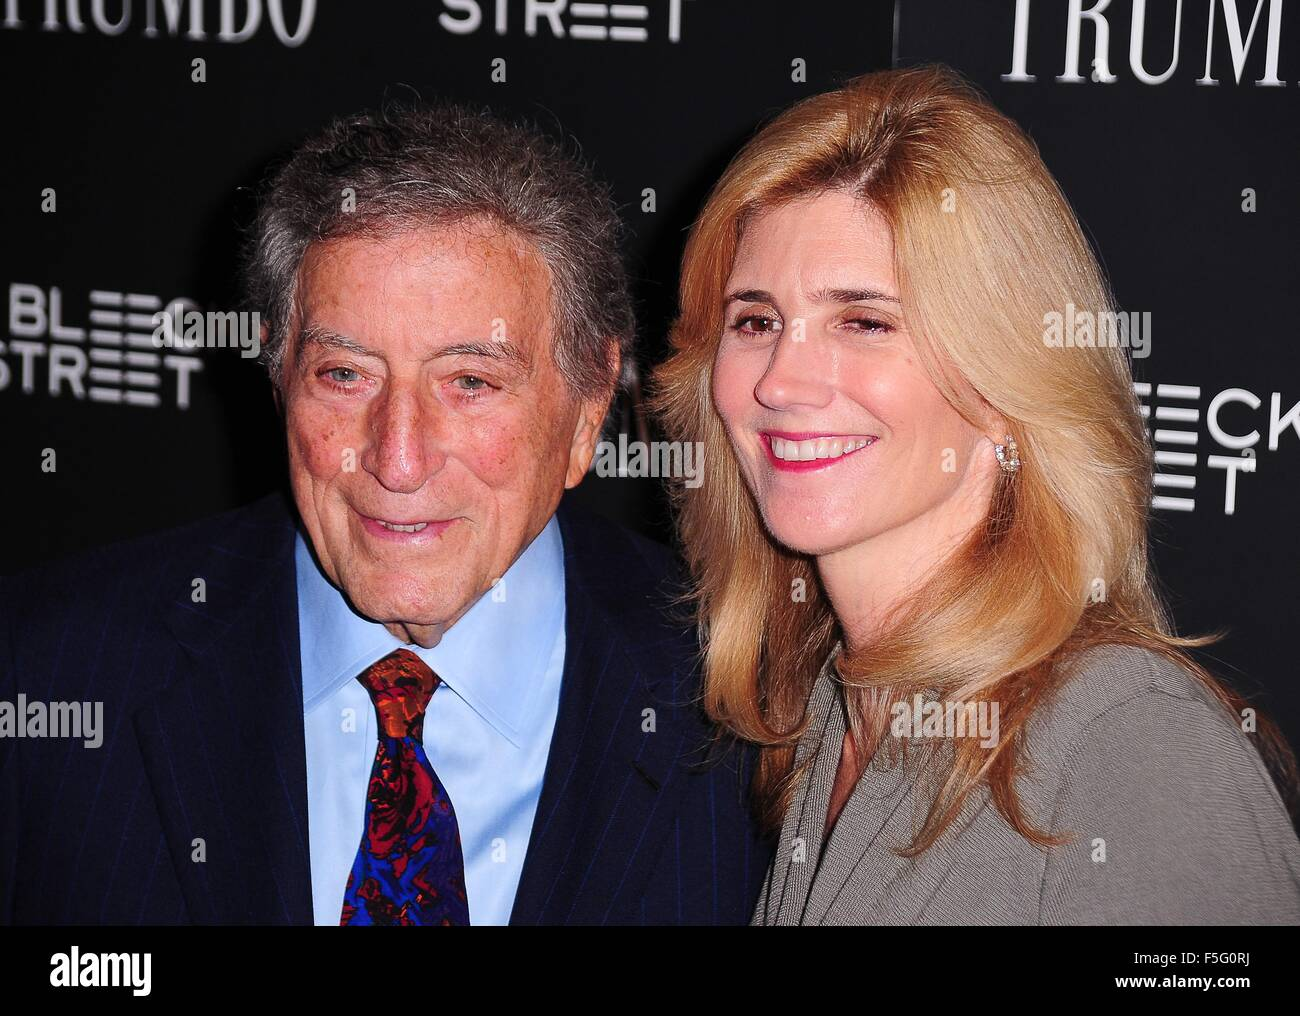 New York, NY, USA. 3rd Nov, 2015. Tony Bennett, Susan Crow at arrivals for TRUMBO Premiere, Museum of Modern Art - Stock Image